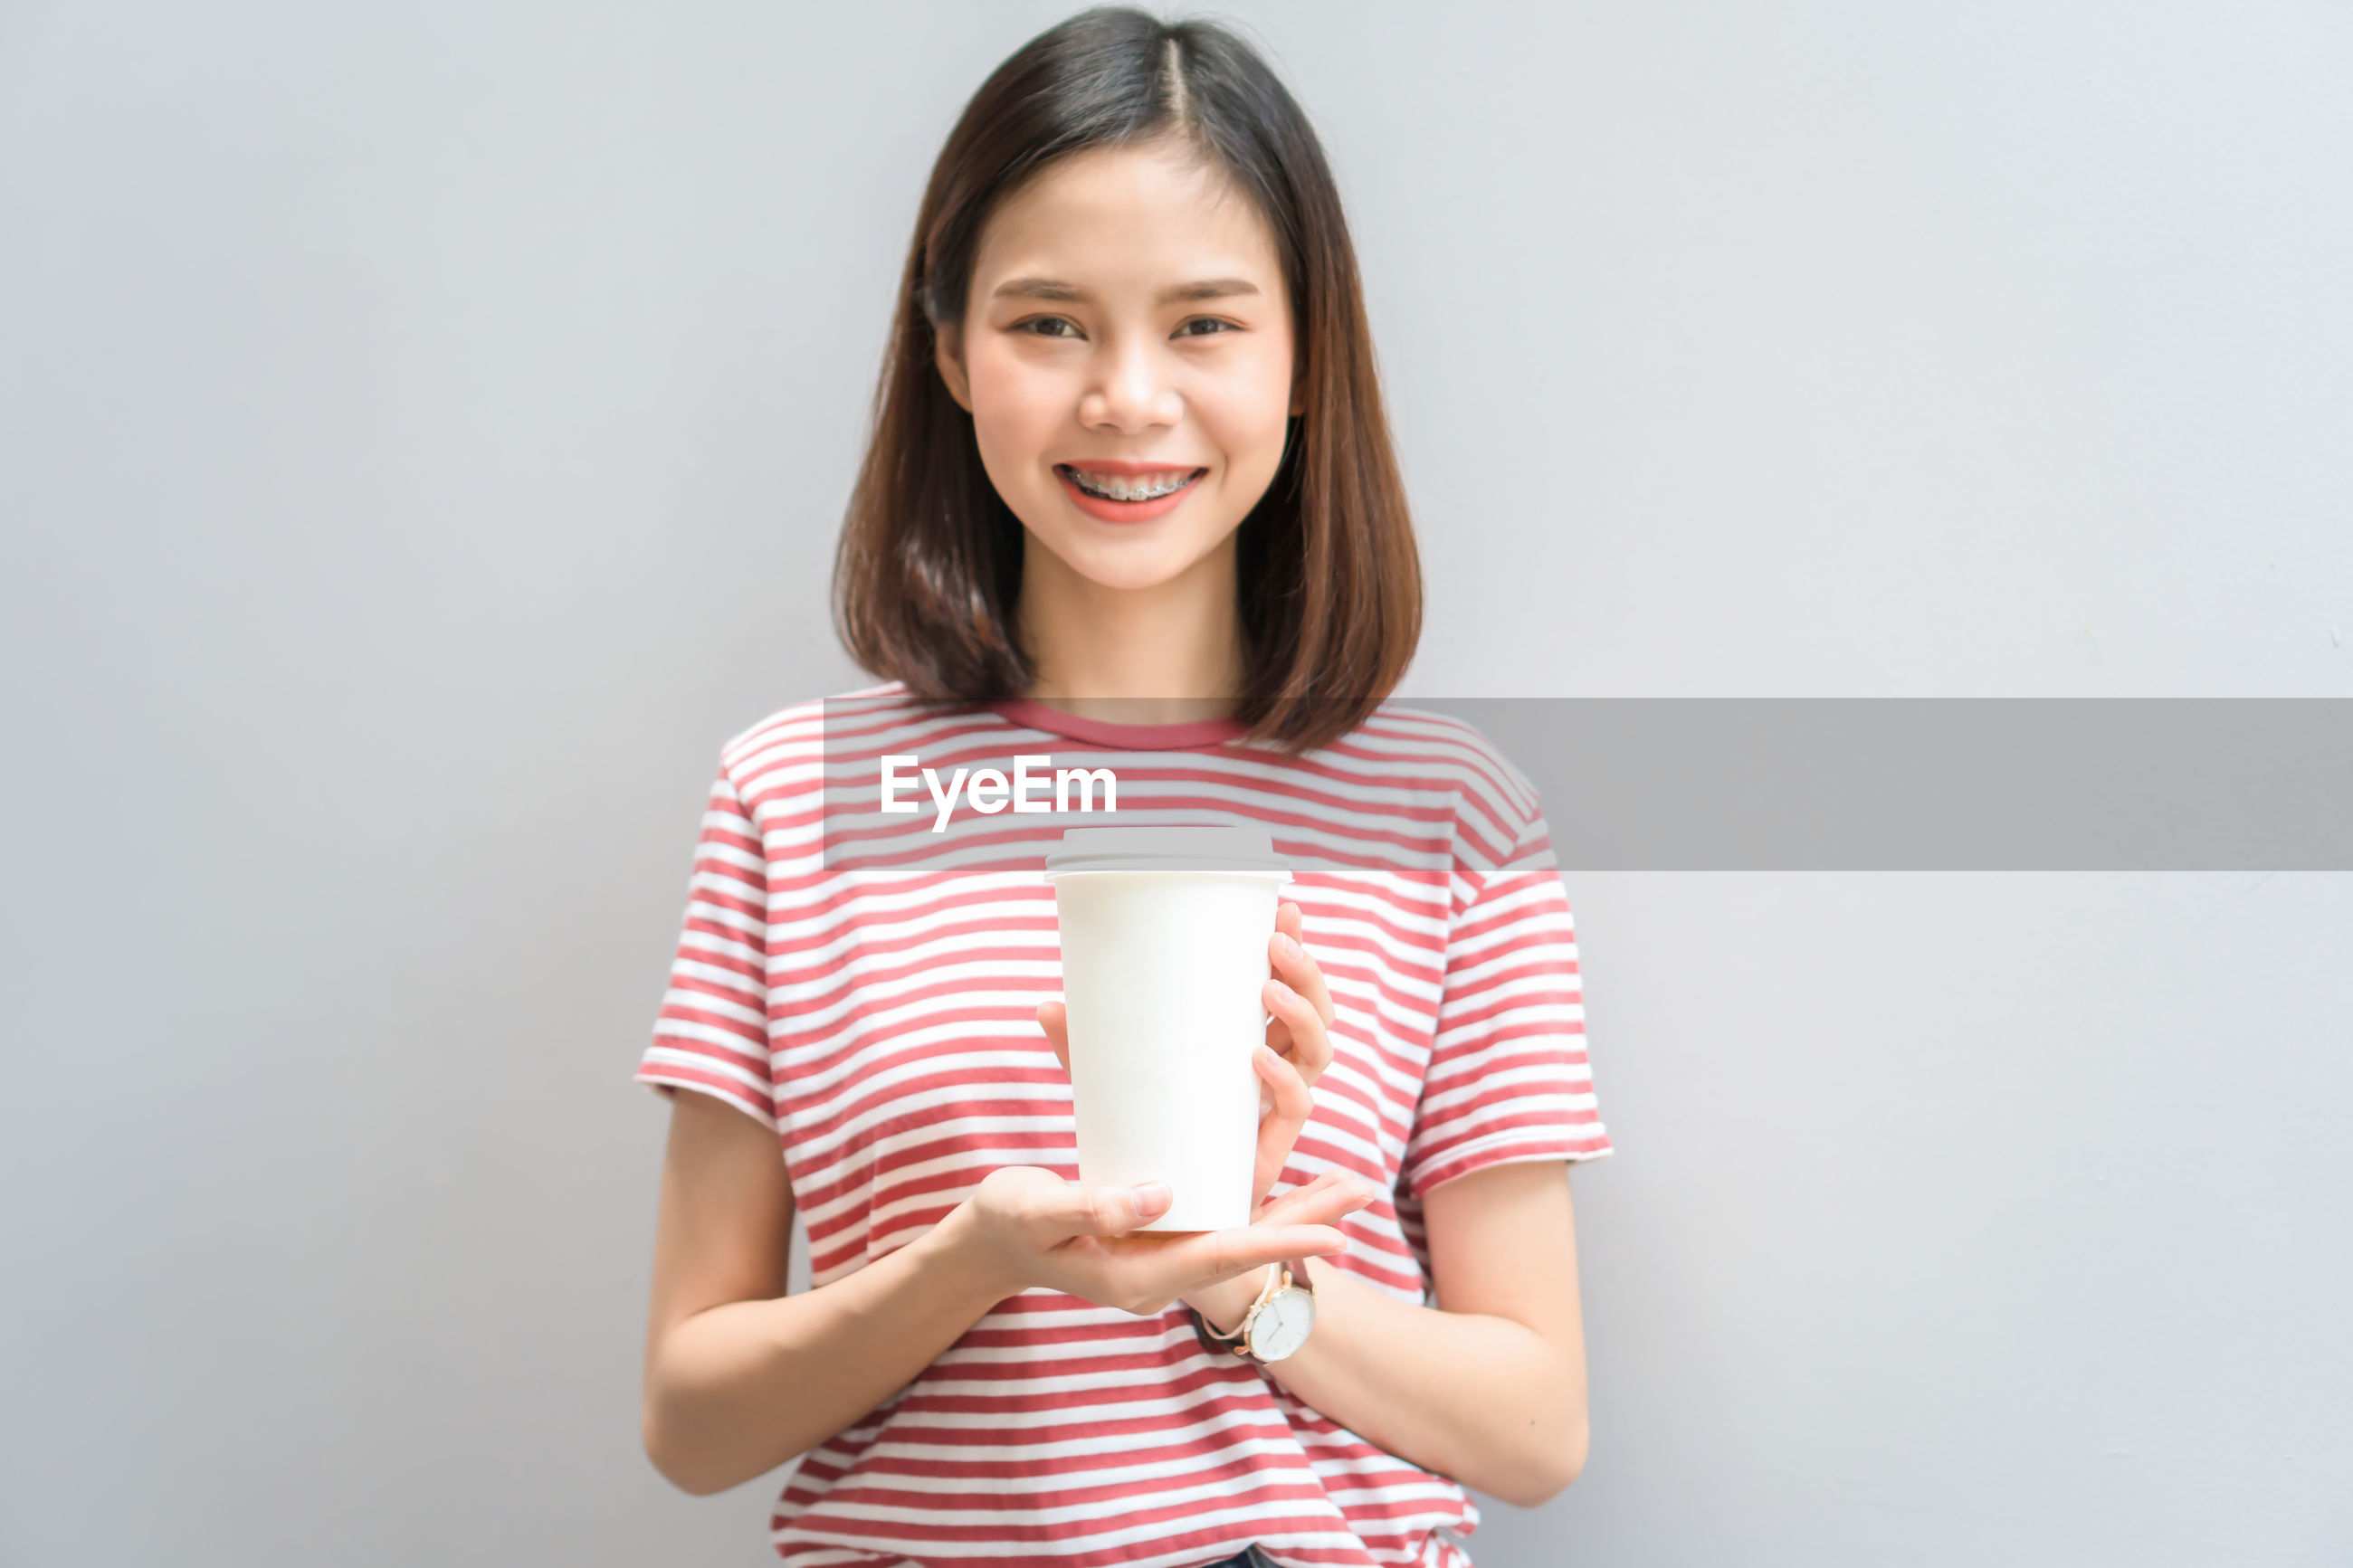 Portrait of smiling girl holding disposable cup against gray background